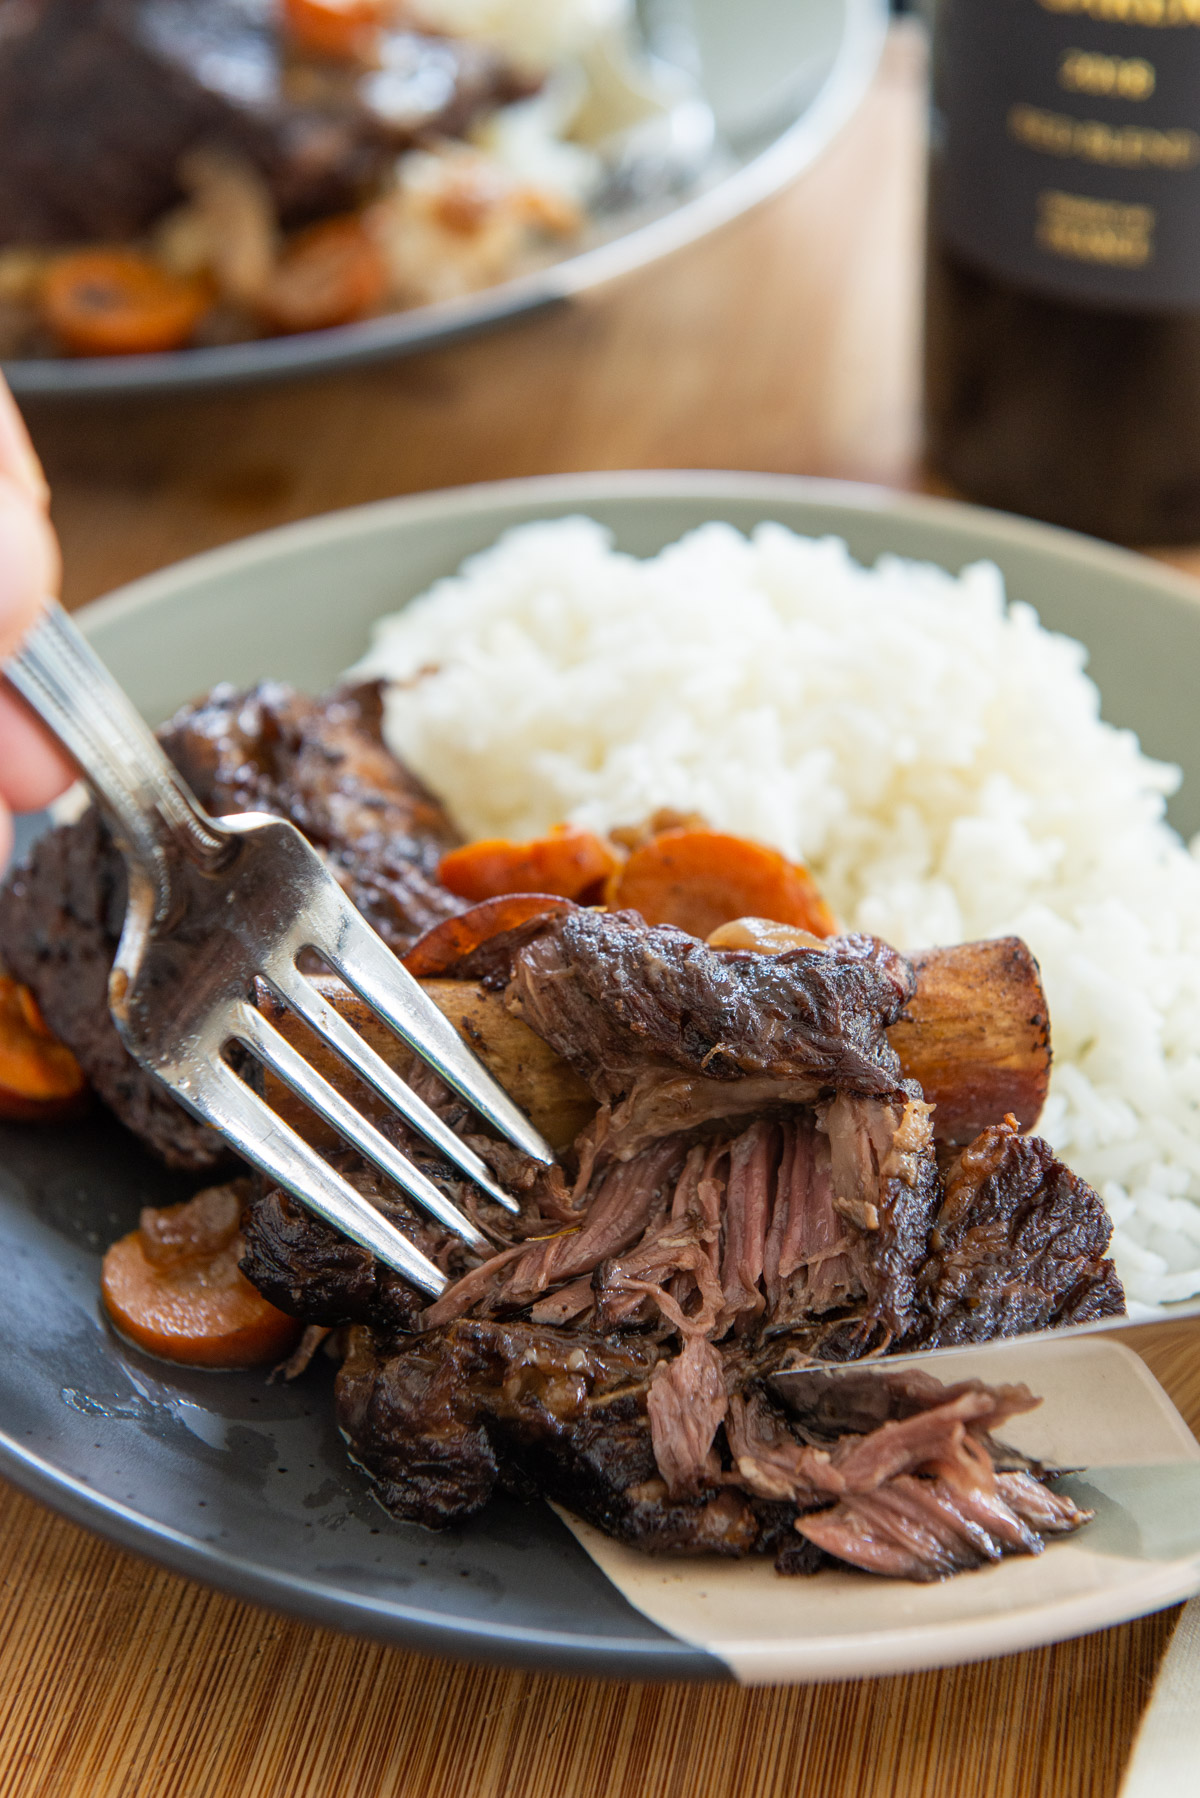 Slow Cooker Short Ribs Plated with White Rice and Fork and Knife Showing Texture